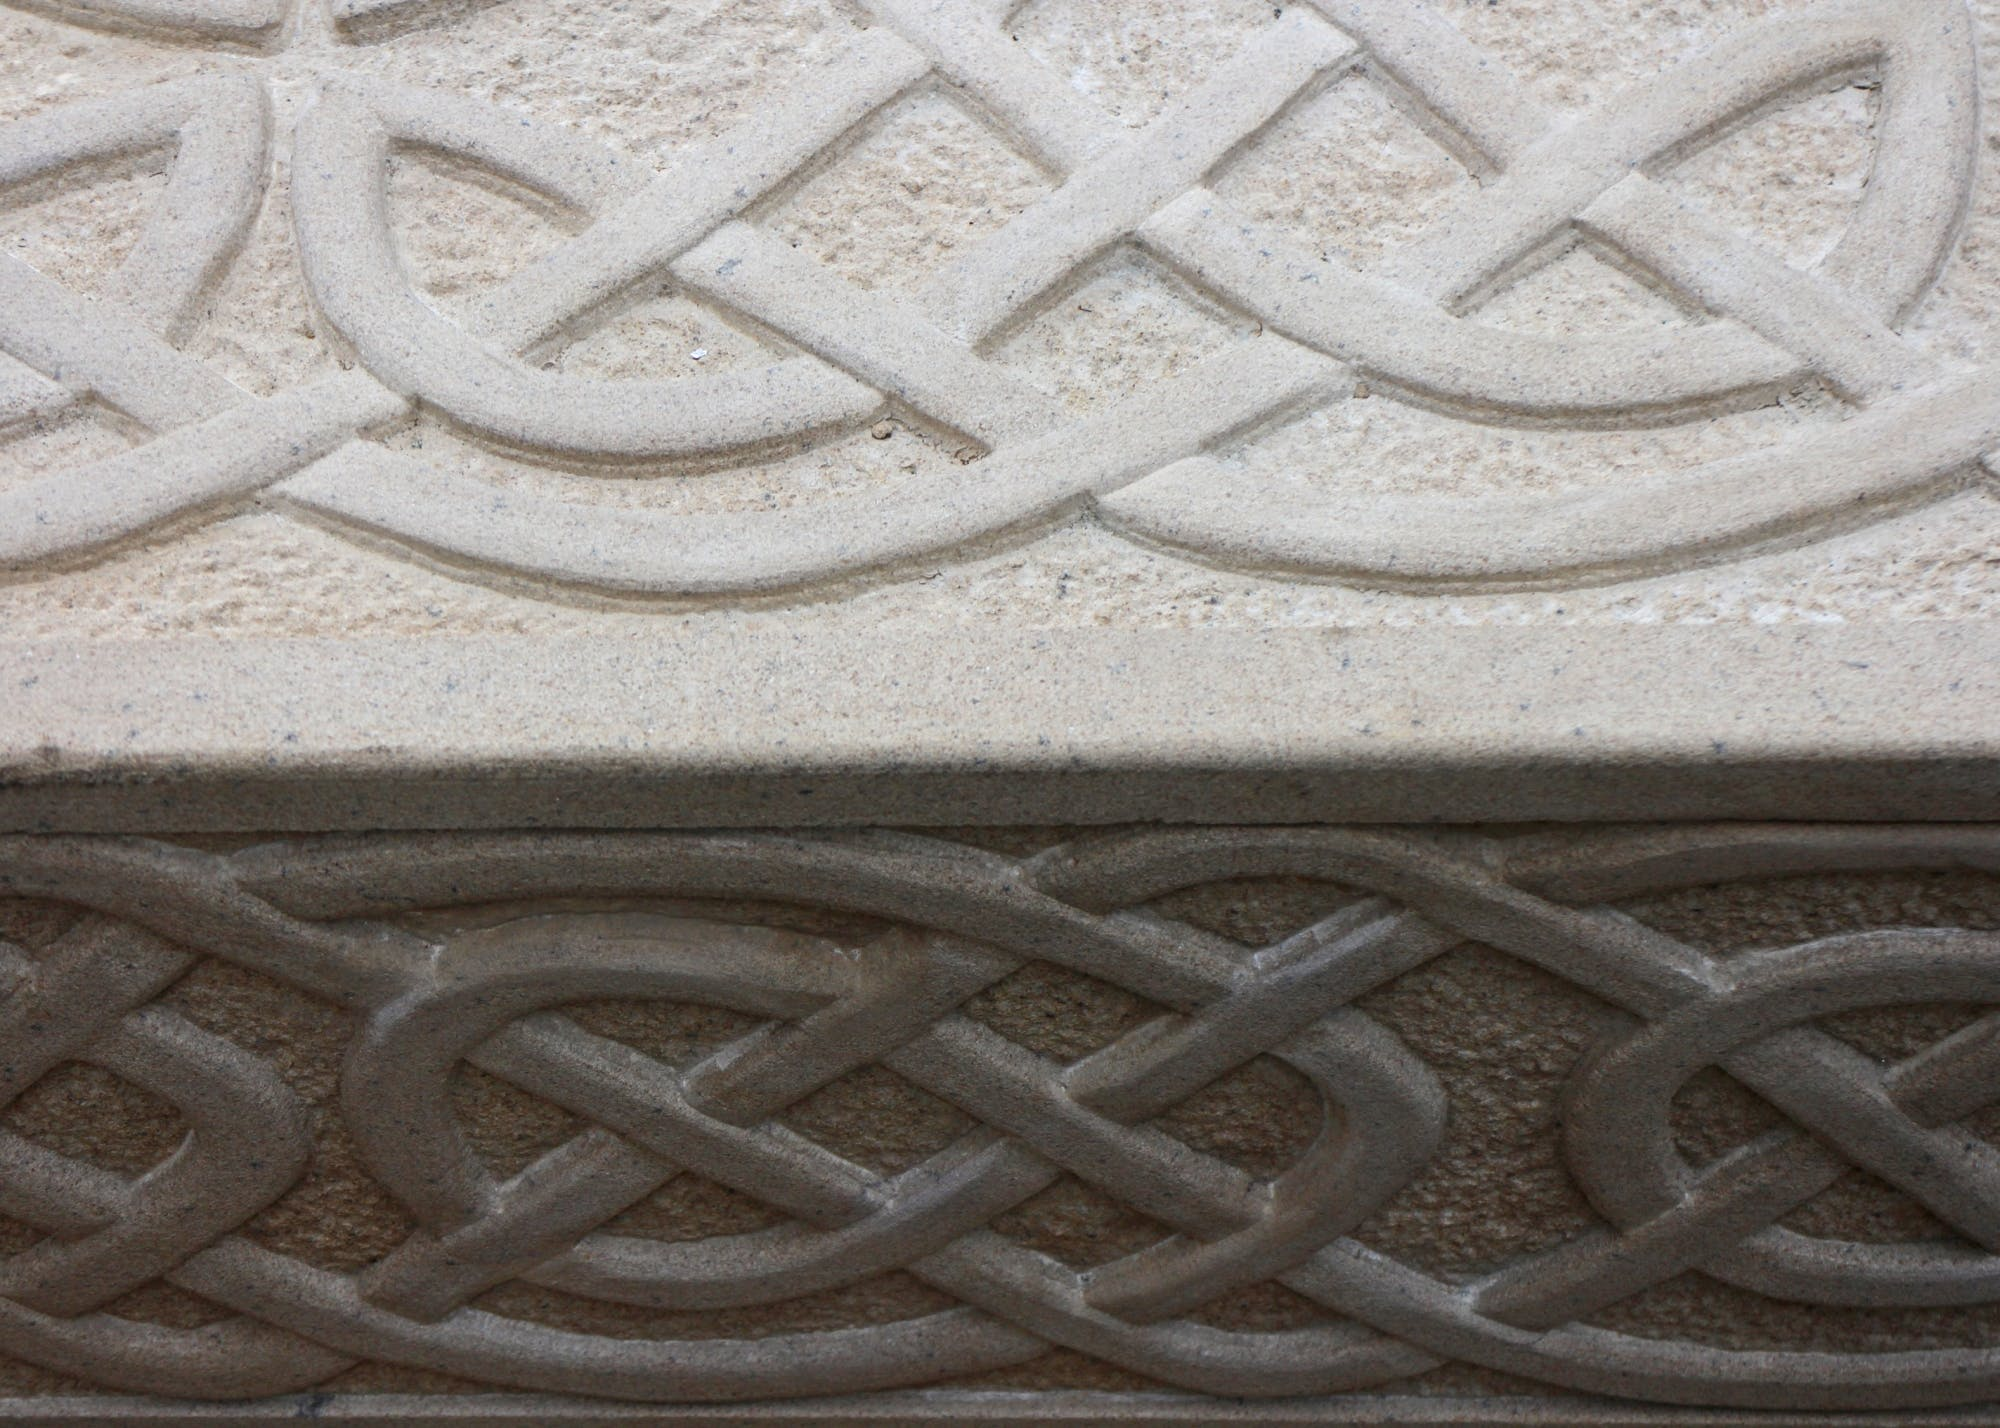 Close up detail of the carving.